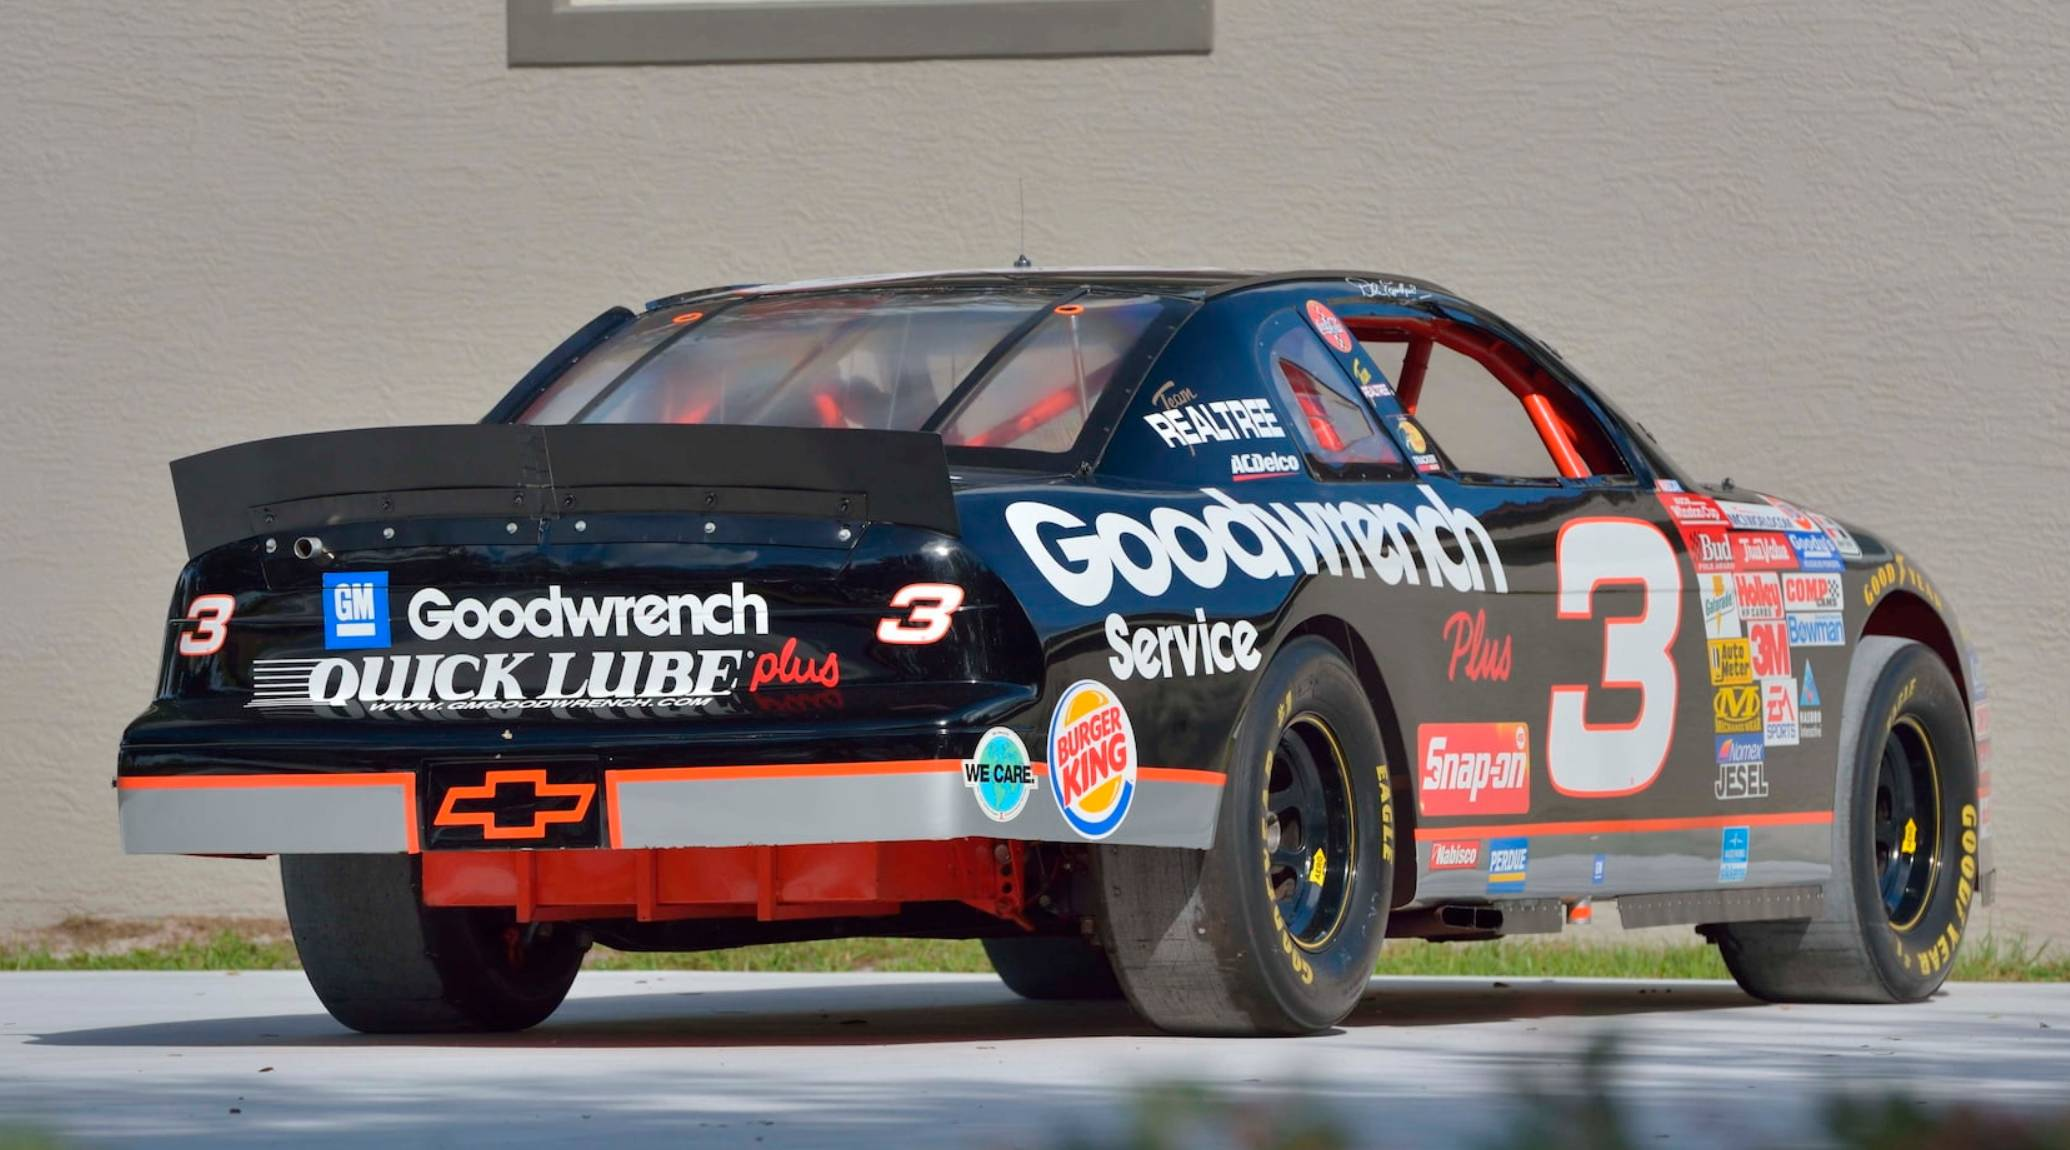 Goodwrench - Dale Earnhardt 3